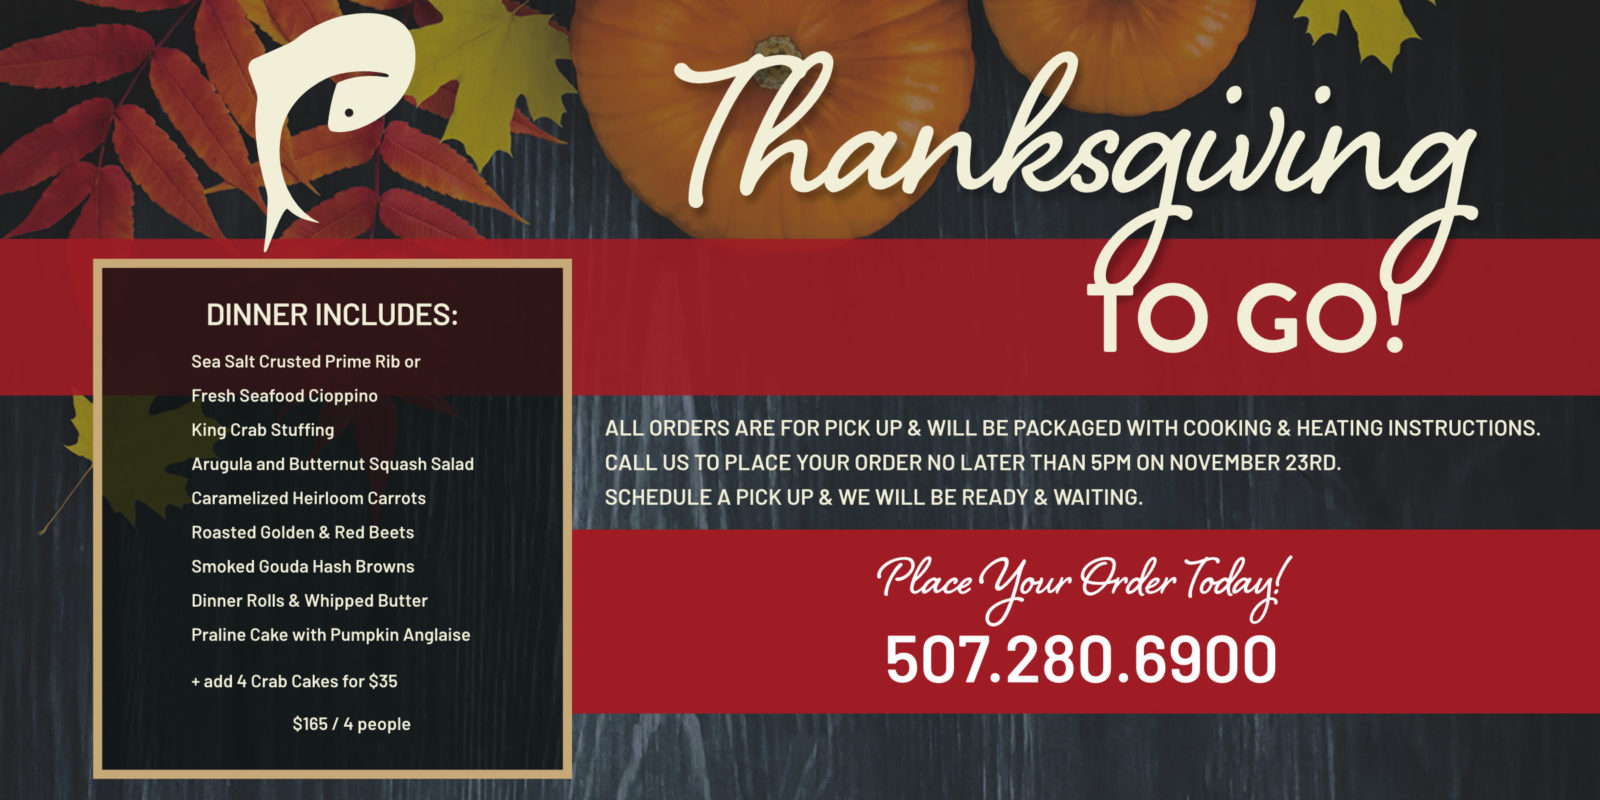 Pescara Thanksgiving To Go - Place your order today! 507.280.6900